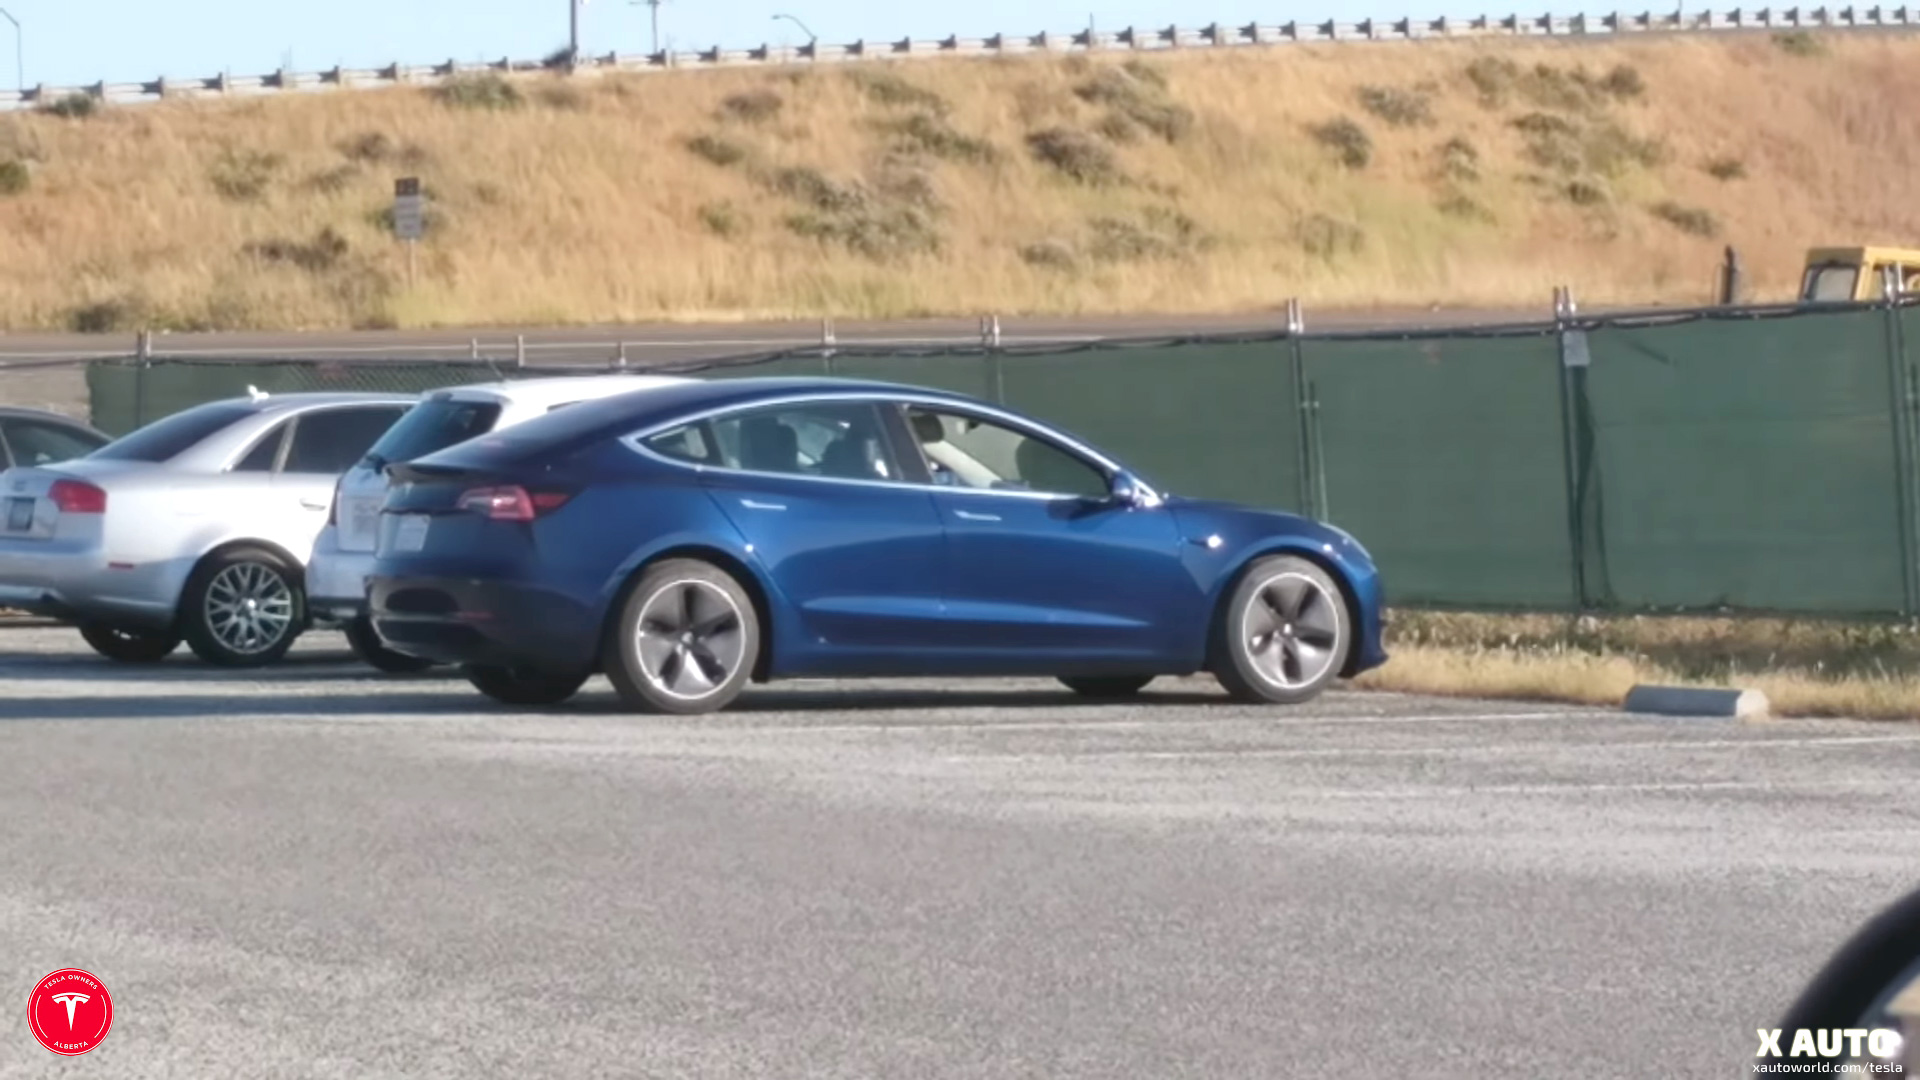 New 'aero wheels' spotted on a Tesla Model 3